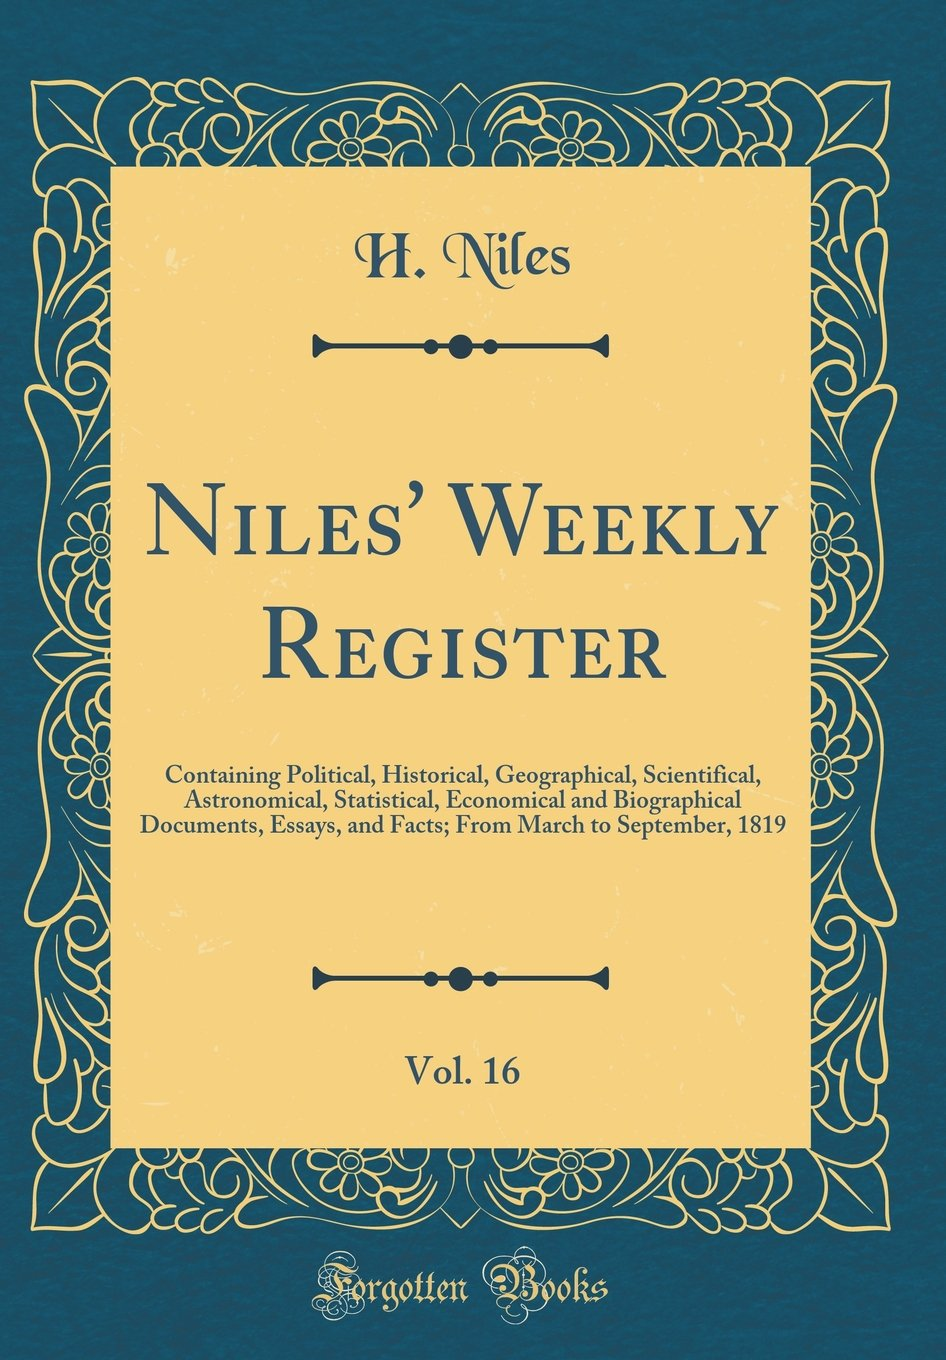 Niles' Weekly Register, Vol. 16: Containing Political, Historical, Geographical, Scientifical, Astronomical, Statistical, Economical and Biographical ... March to September, 1819 (Classic Reprint) pdf